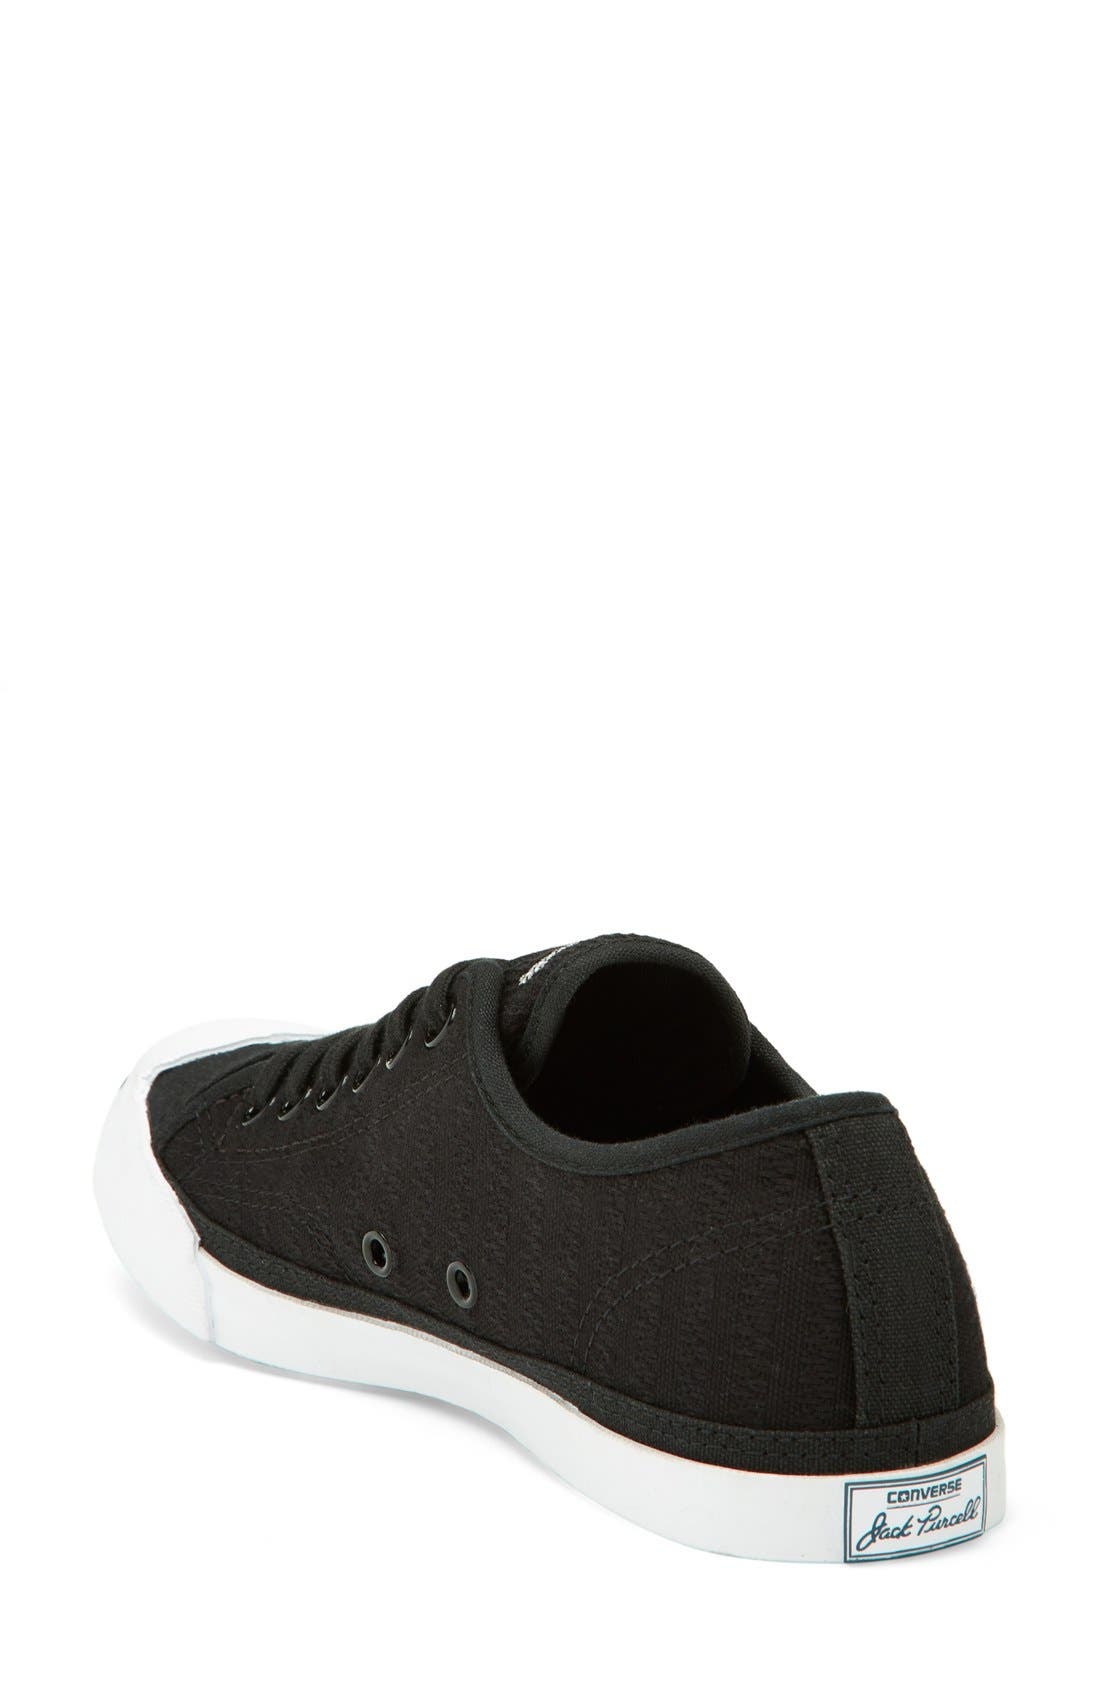 Alternate Image 2  - Converse 'Jack Purcell' Garment Dye Low Top Sneaker (Women) (Nordstrom Exclusive)